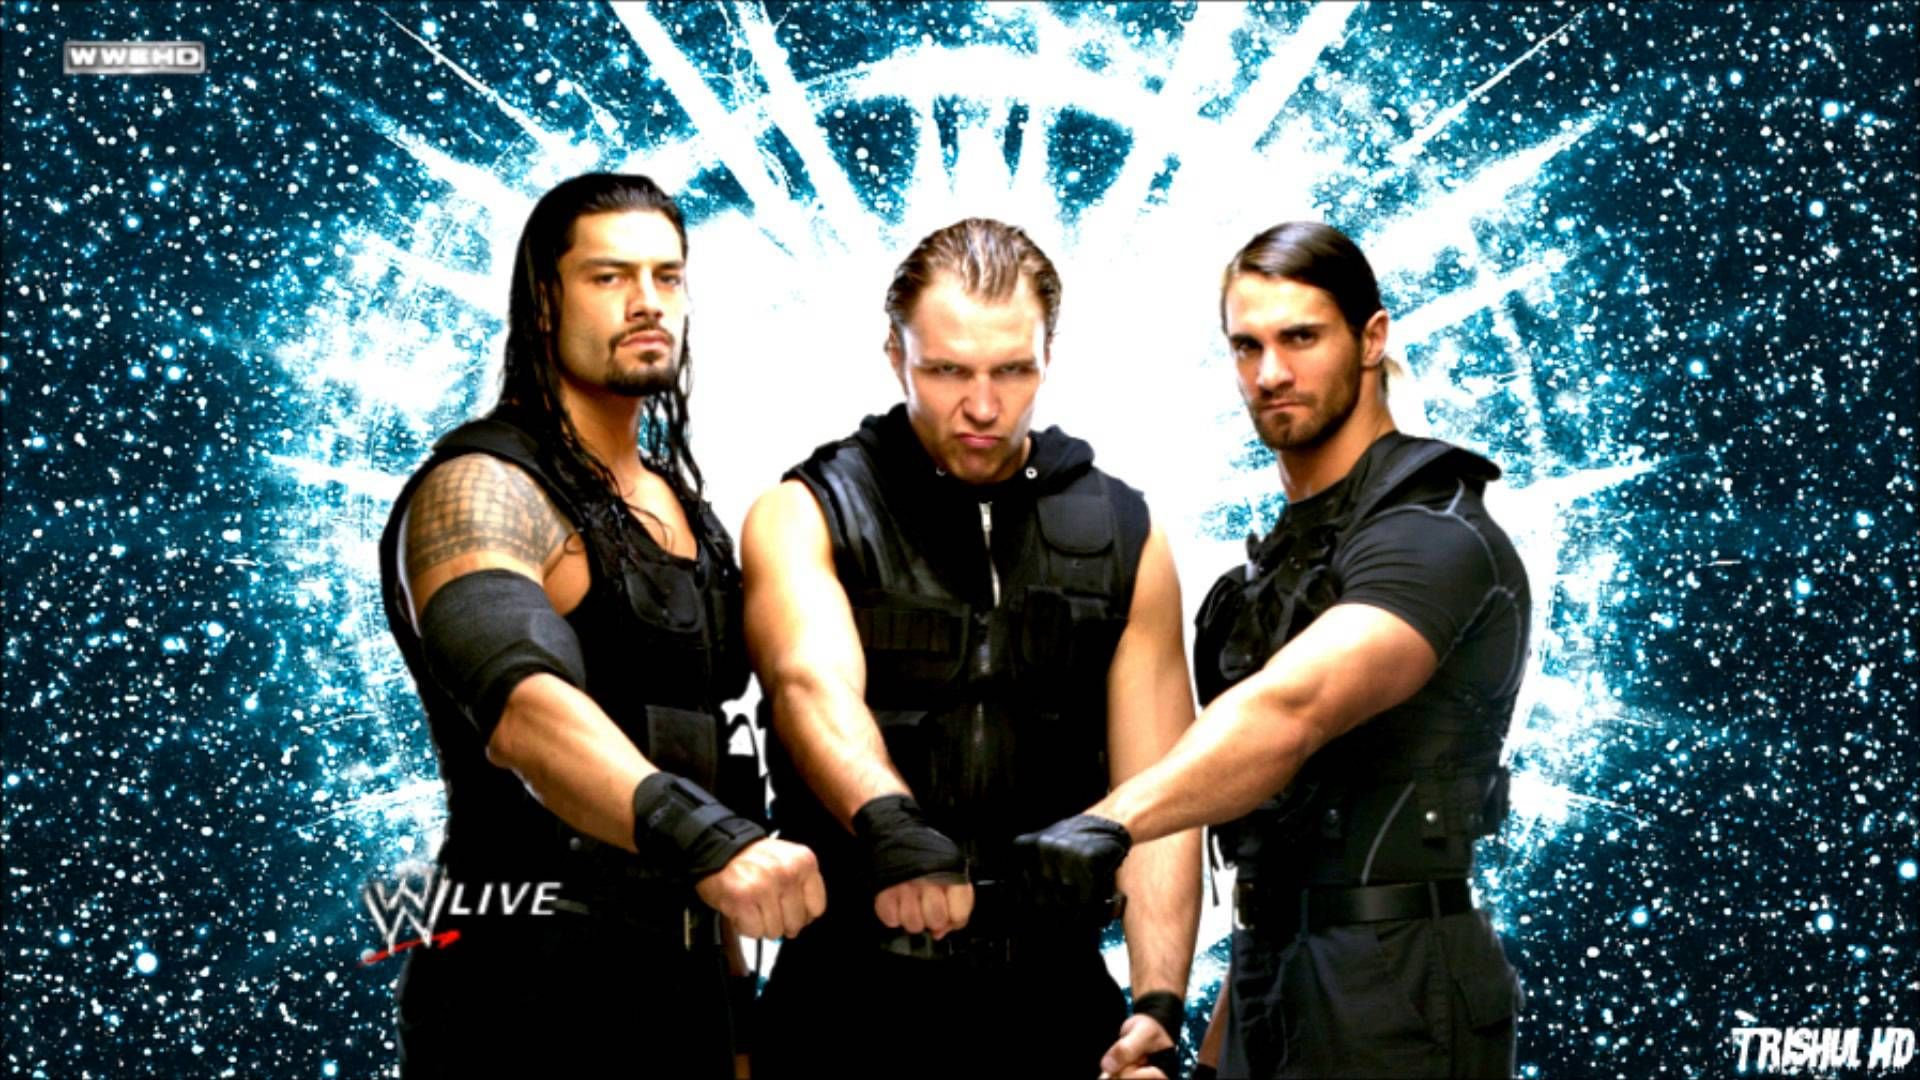 The Shield Theme Song 2013 With Download Link Youtube The Shield Wwe Wwe Wallpapers Wwe